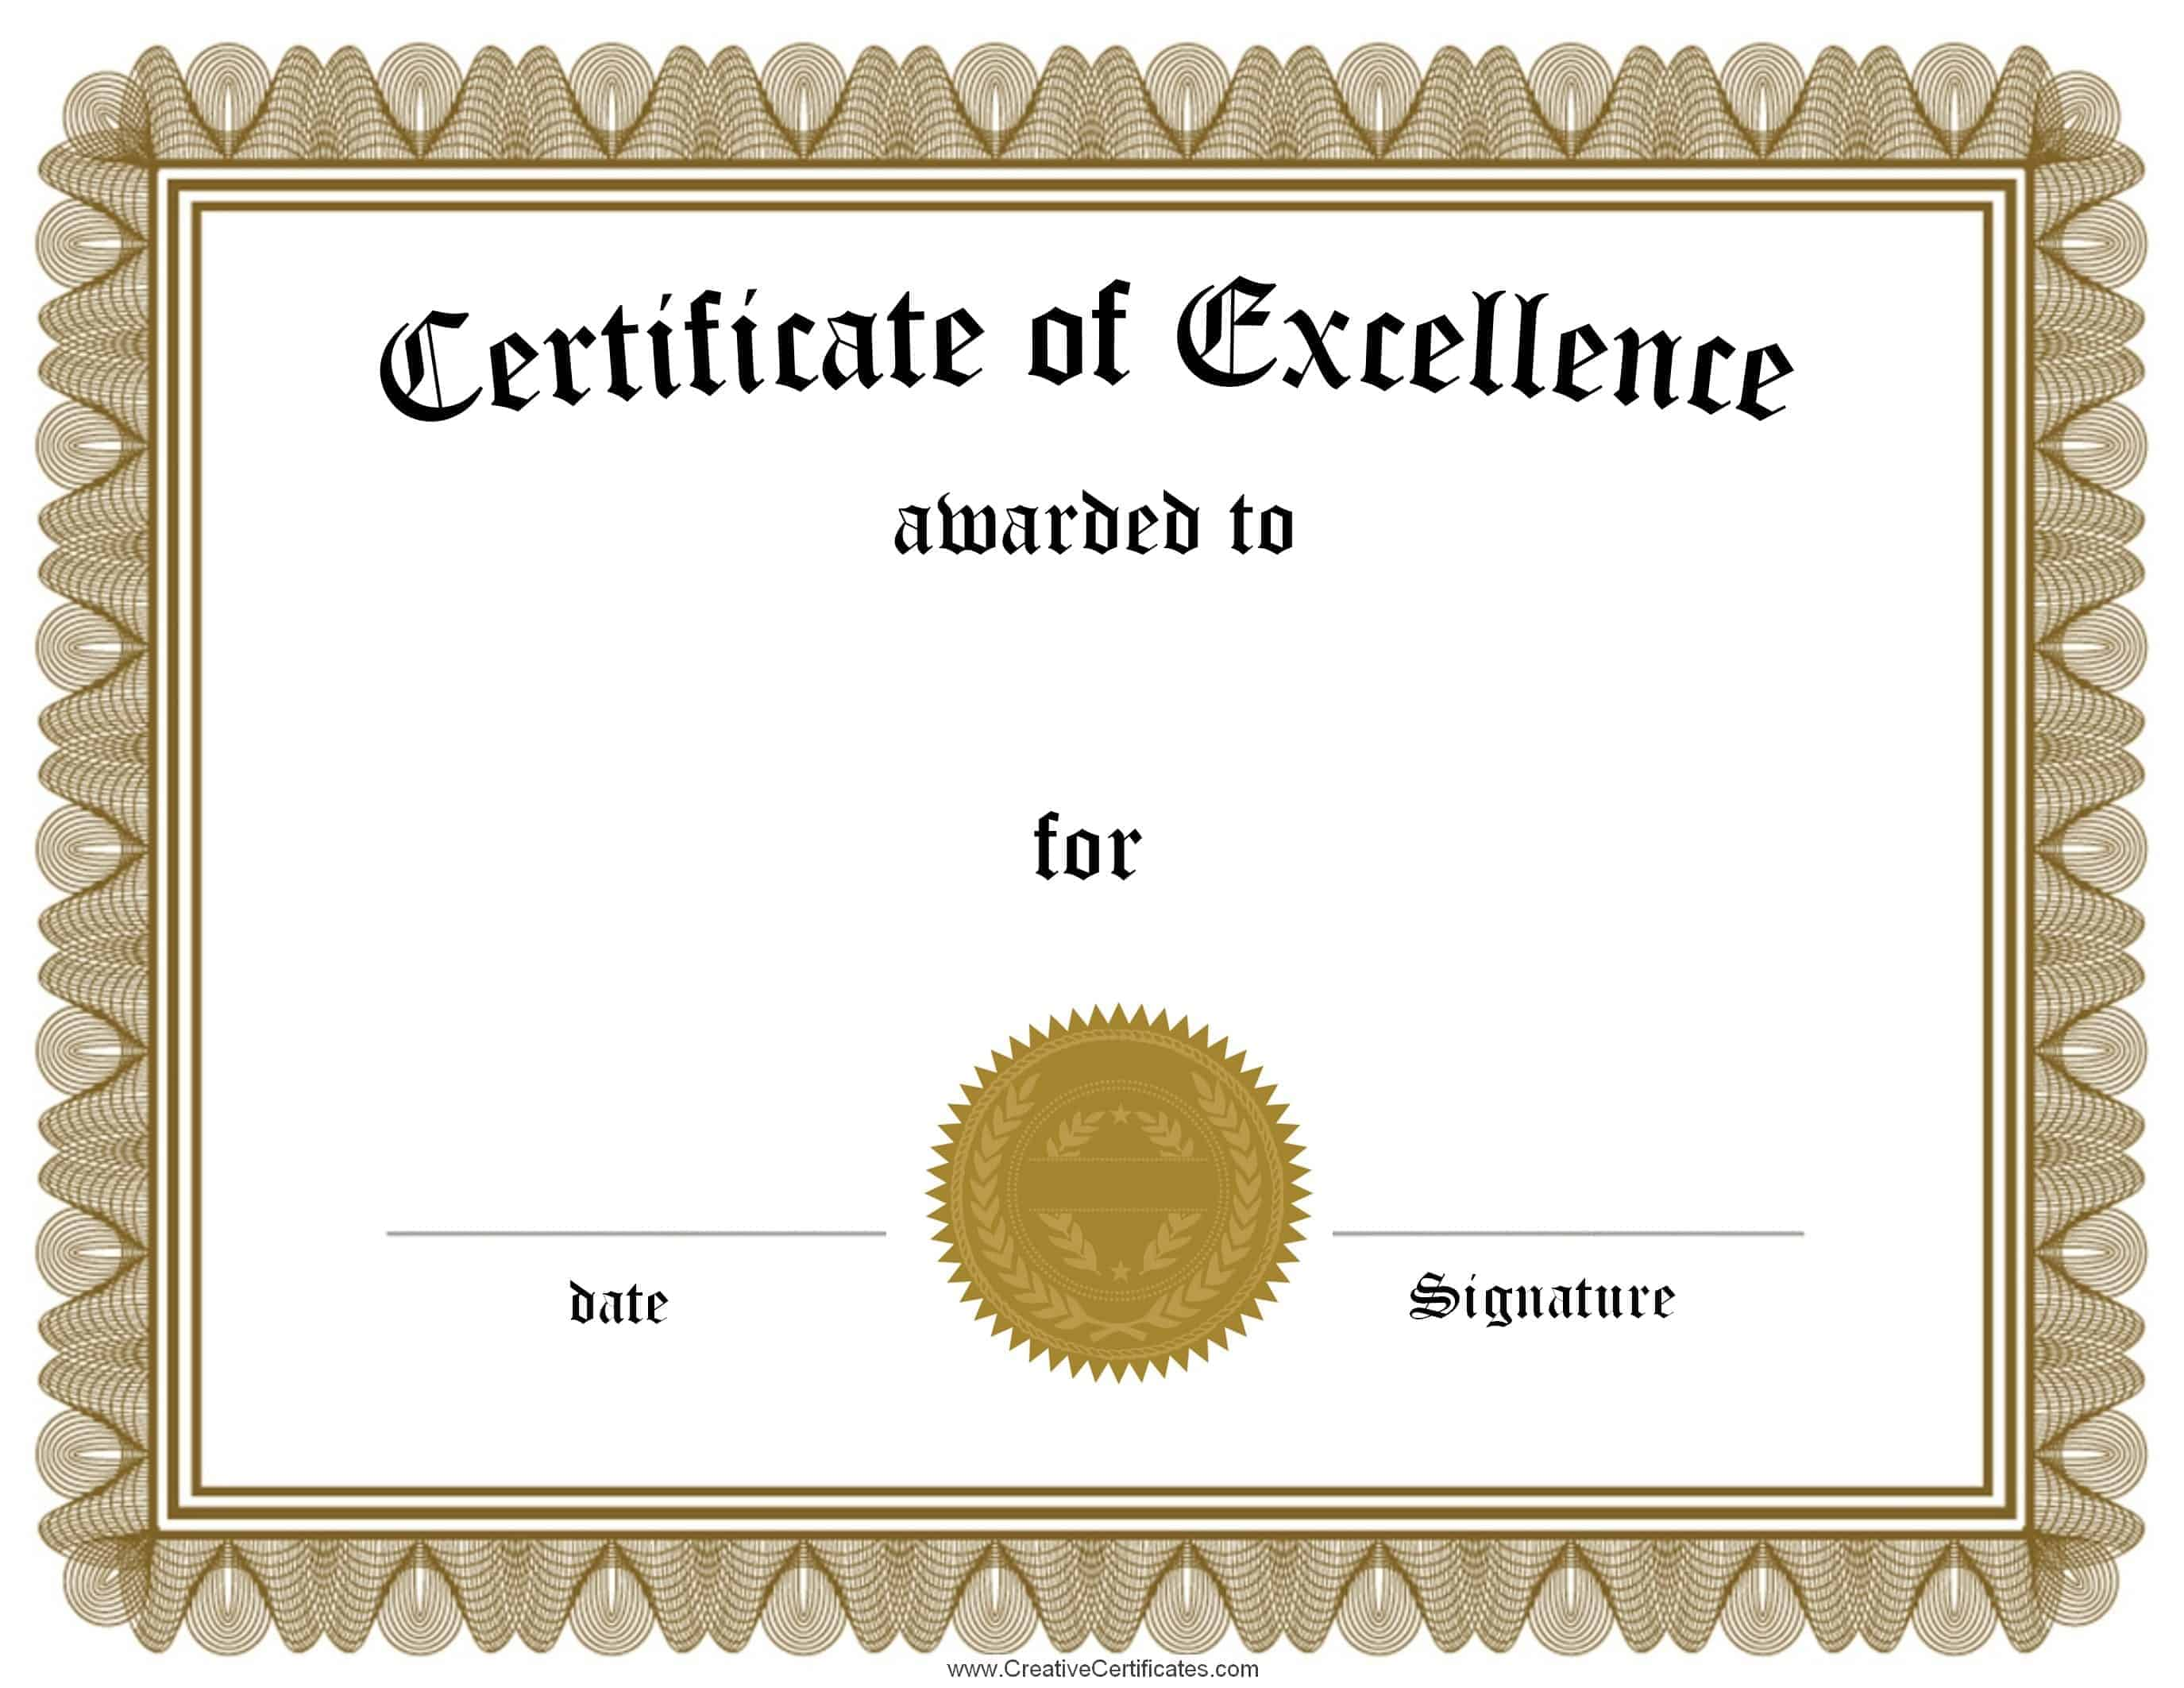 Free customizable certificate of achievement certificate of excellence xflitez Gallery